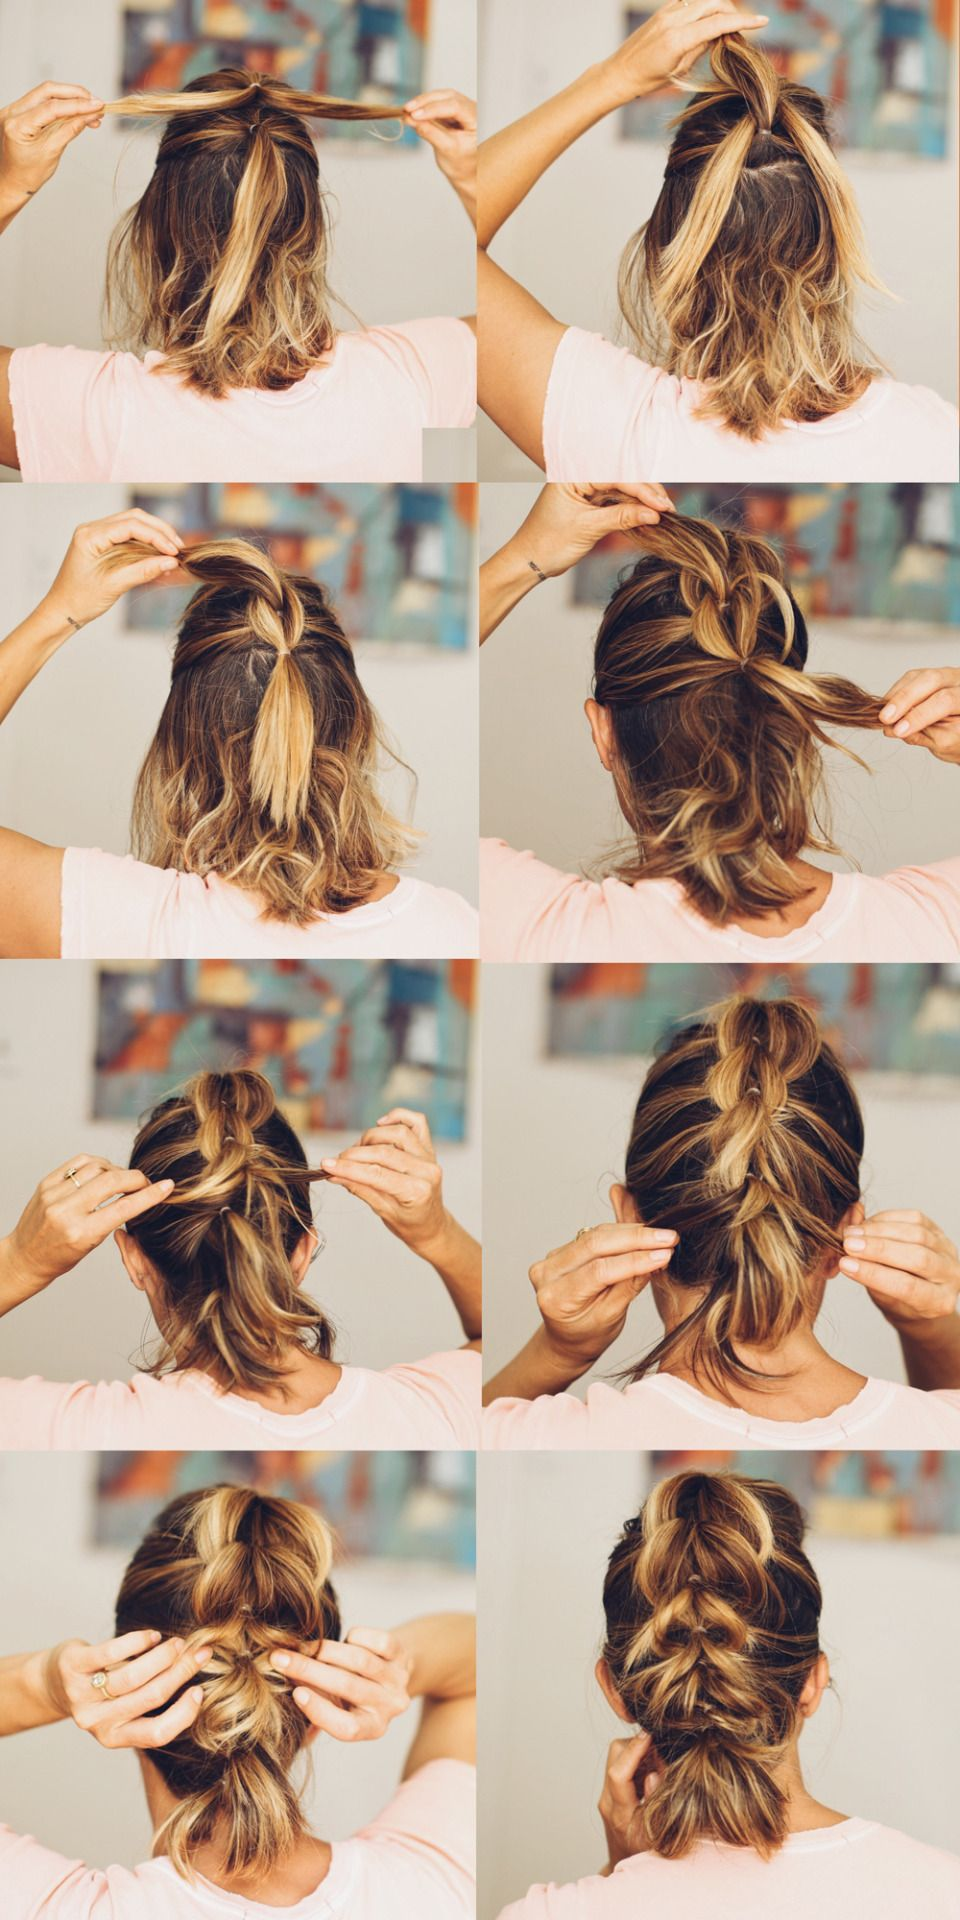 Lob Hairstyle  If You Have Shorter Length Hair, Or Kind Of Suck At Braiding  Shorter Length Hairbraiding Your Own